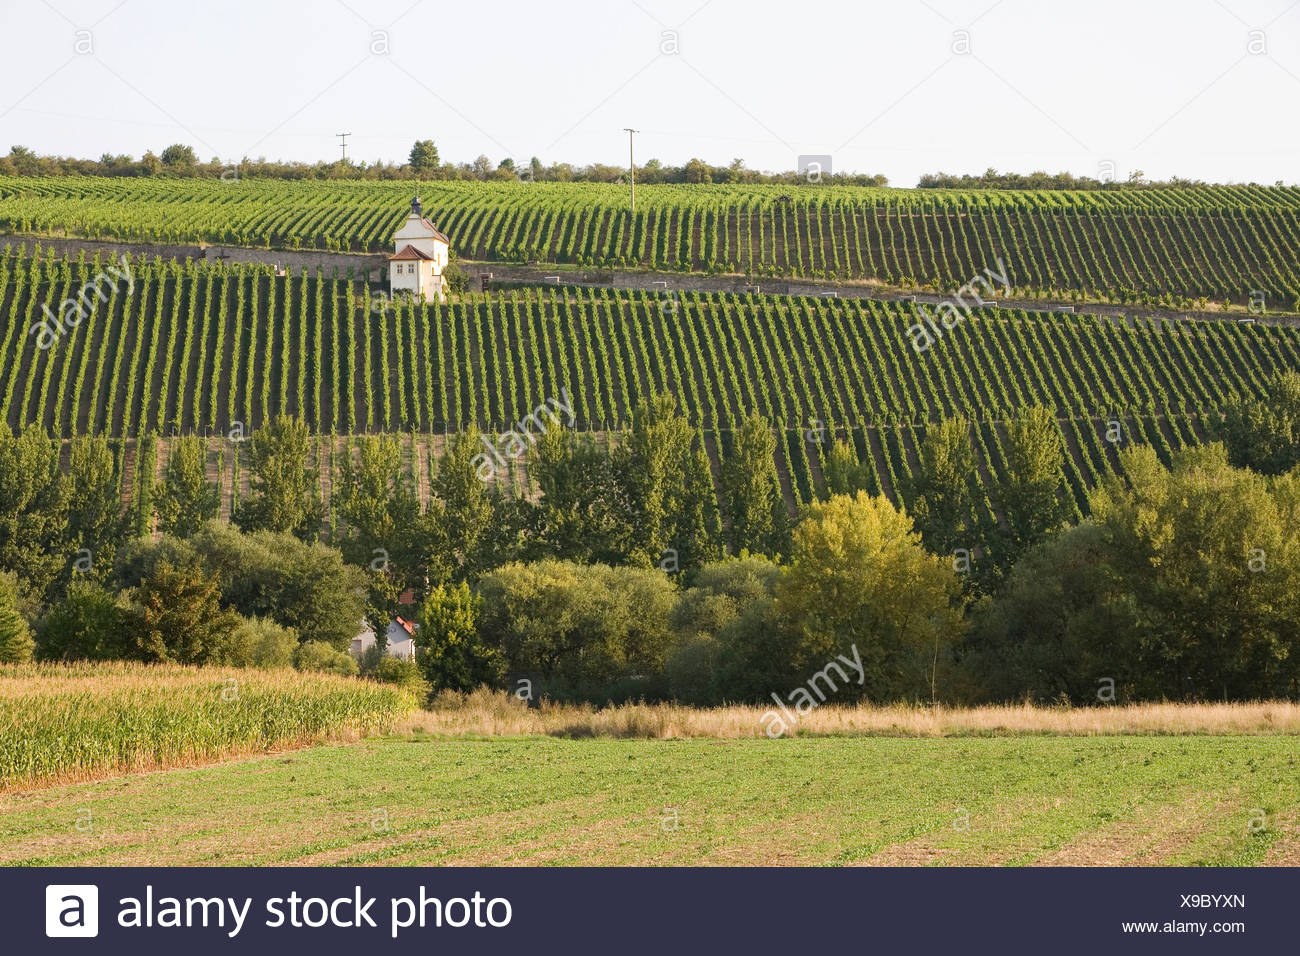 Germany, Bavaria, Michelau im Steigerwald, vineyard on steep hill - Stock Image